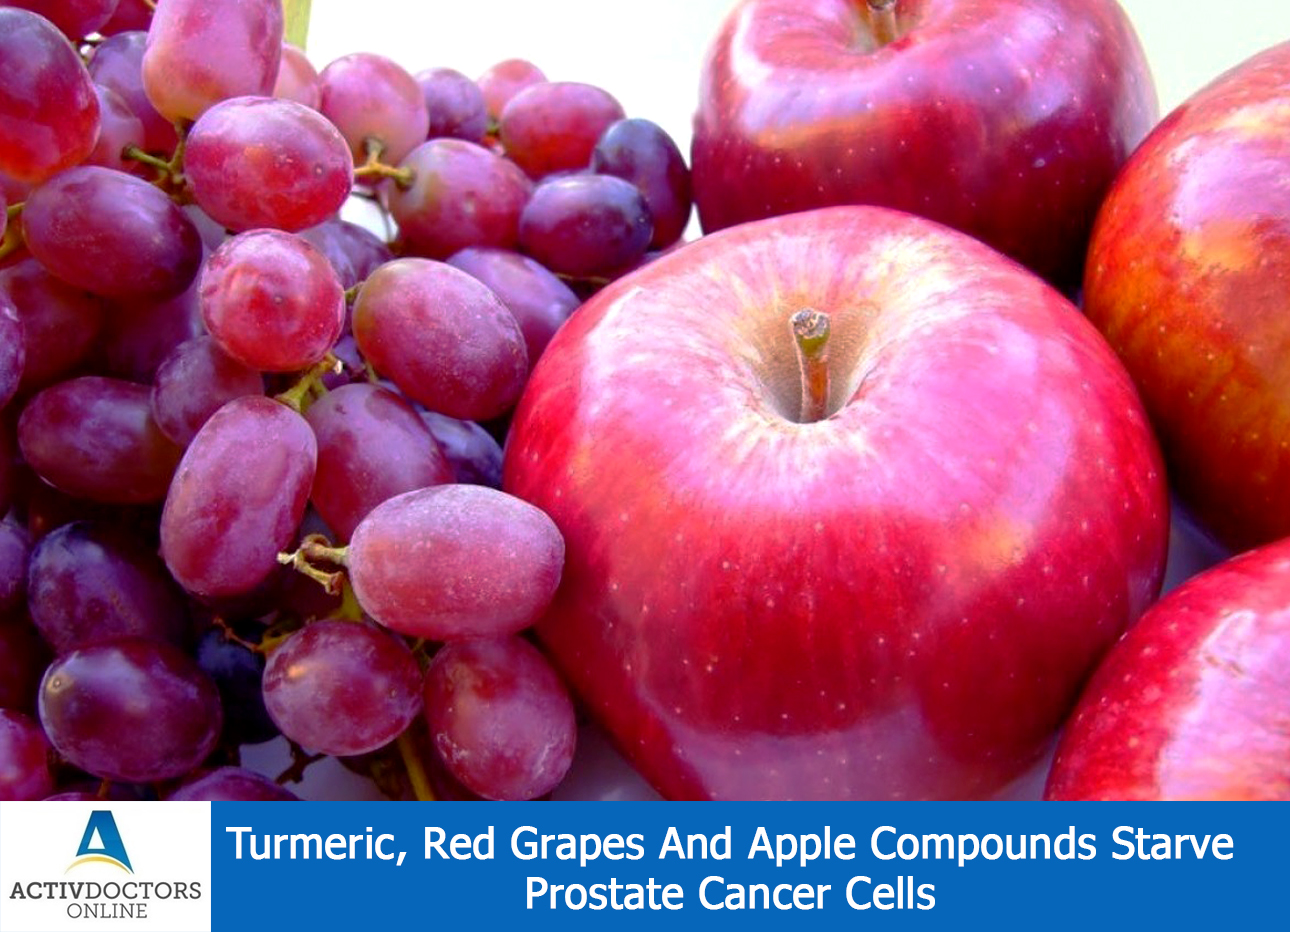 Turmeric, Red Grapes And Apple Compounds Starve Prostate Cancer Cells